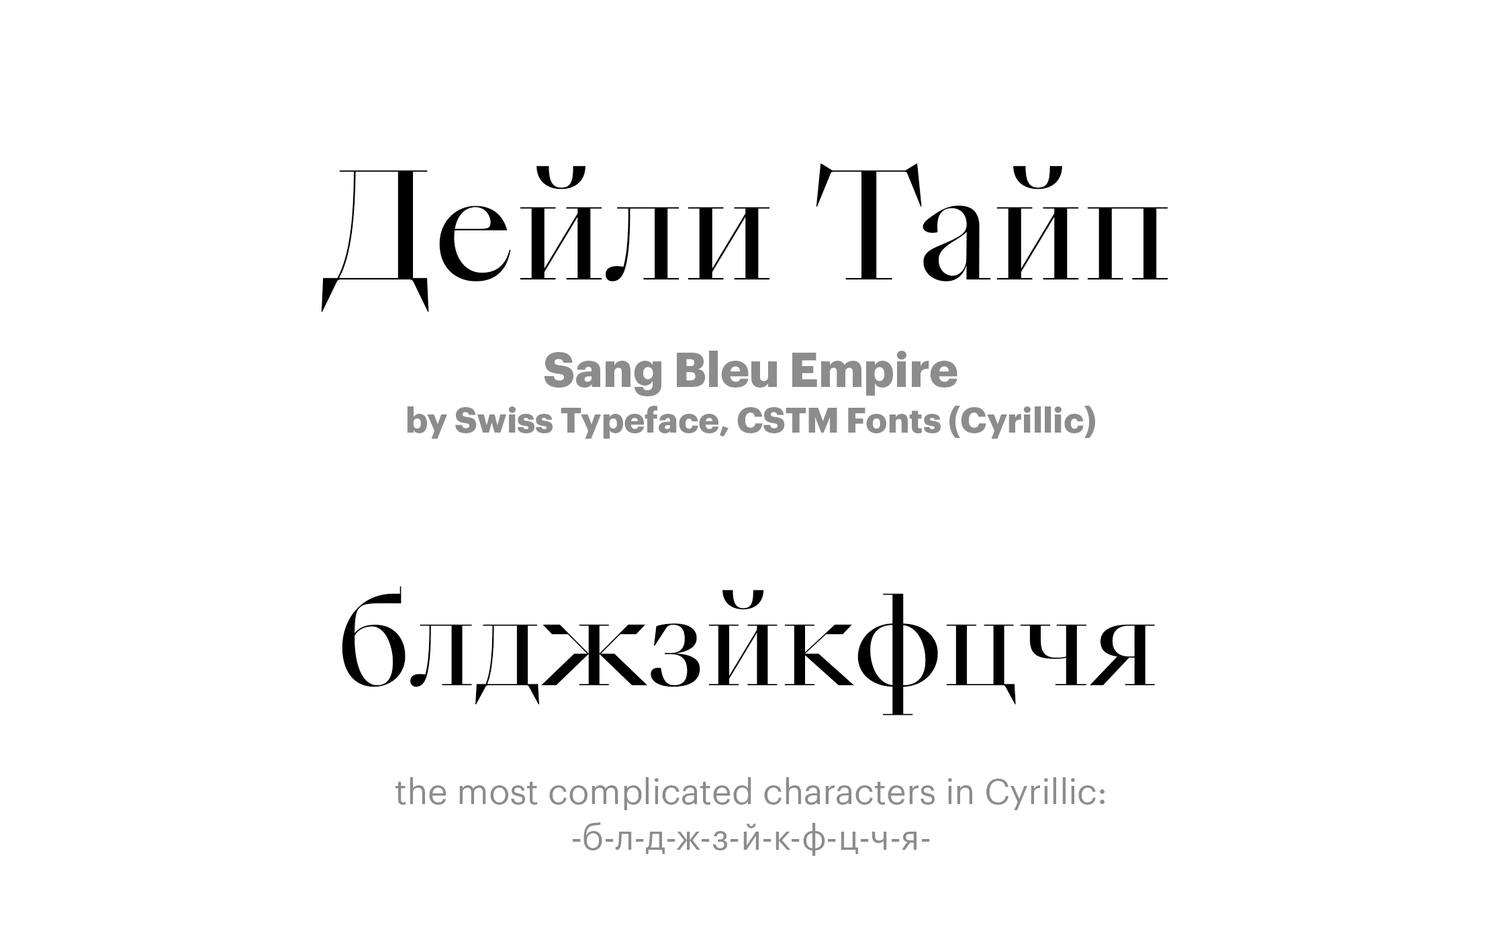 Sang-Bleu-Empire-by-Swiss-Typeface,-CSTM-Fonts-(Cyrillic)